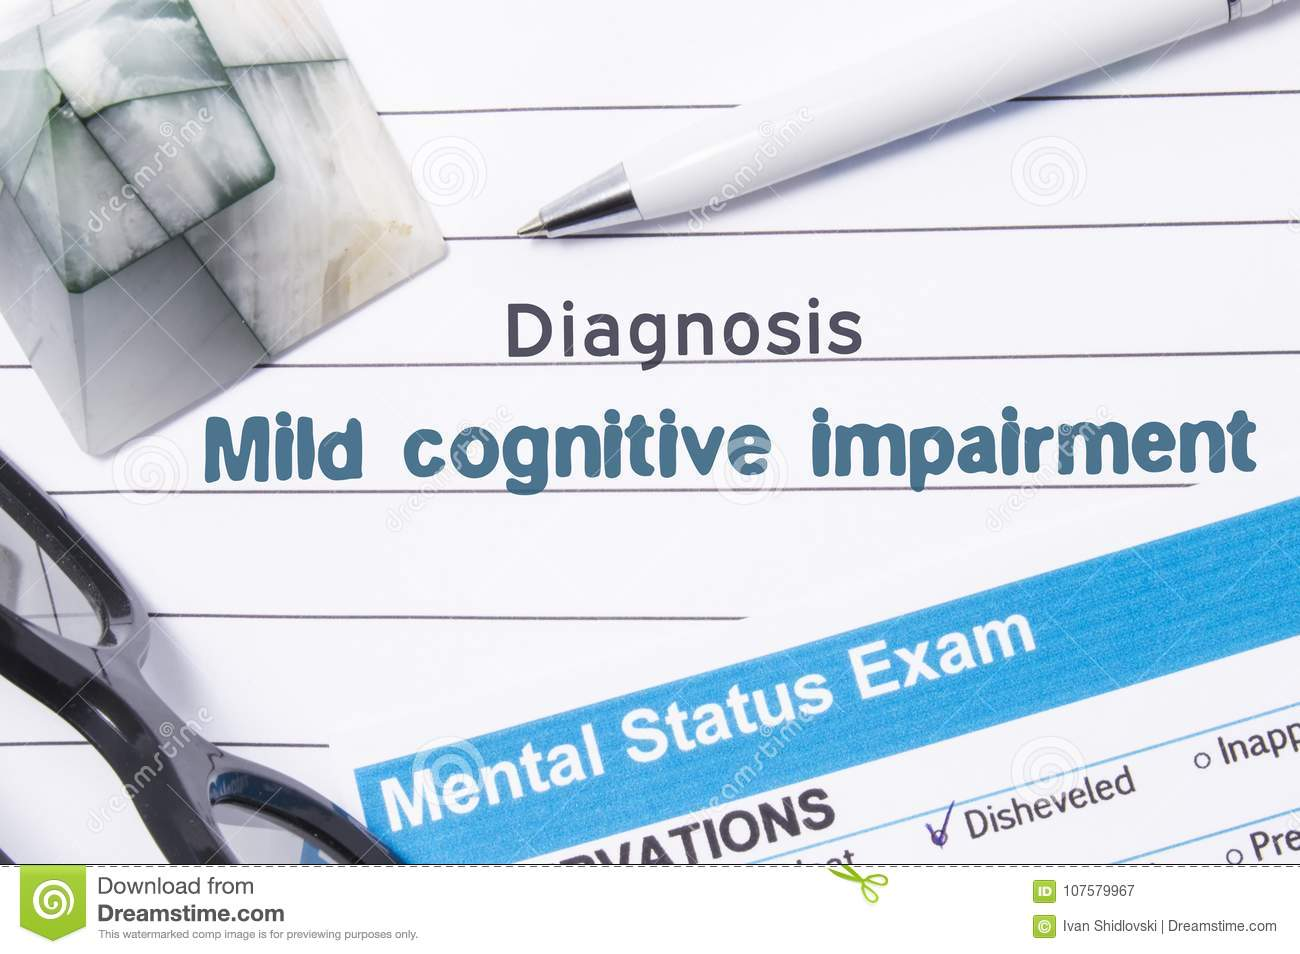 Psychiatric Diagnosis Mild Cognitive Impairment. Medical book or form with the name of diagnosis Mild Cognitive Impairment is on t